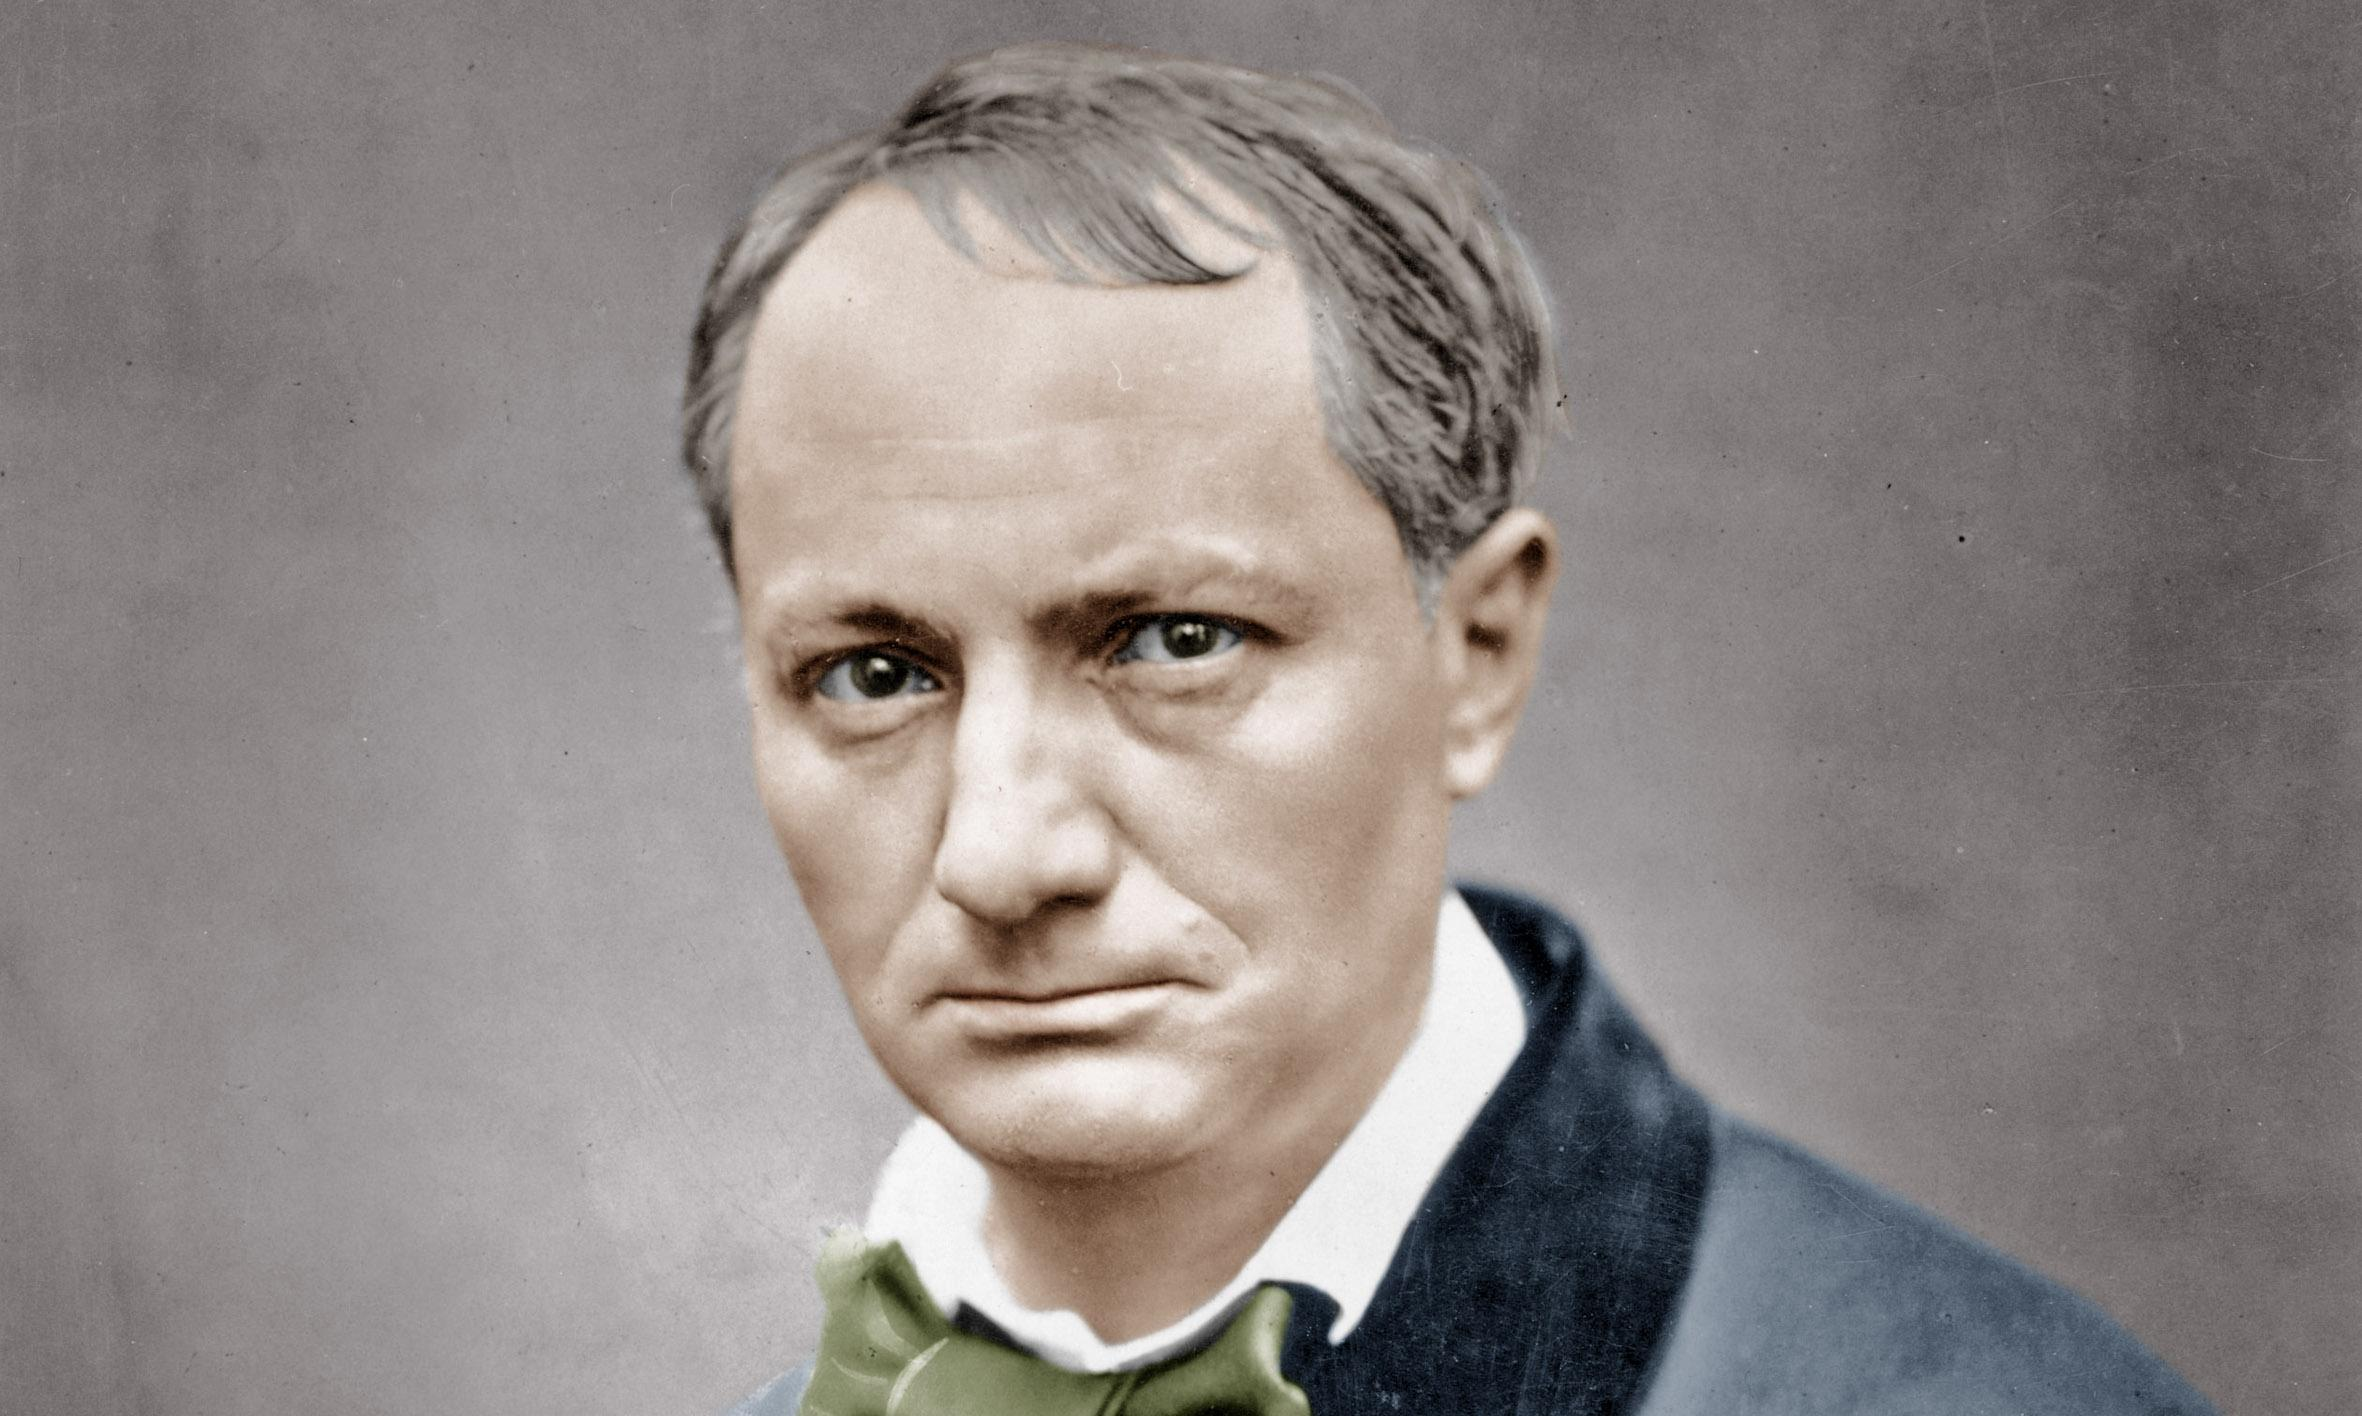 Baudelaire's unknown extra verse to erotic poem revealed